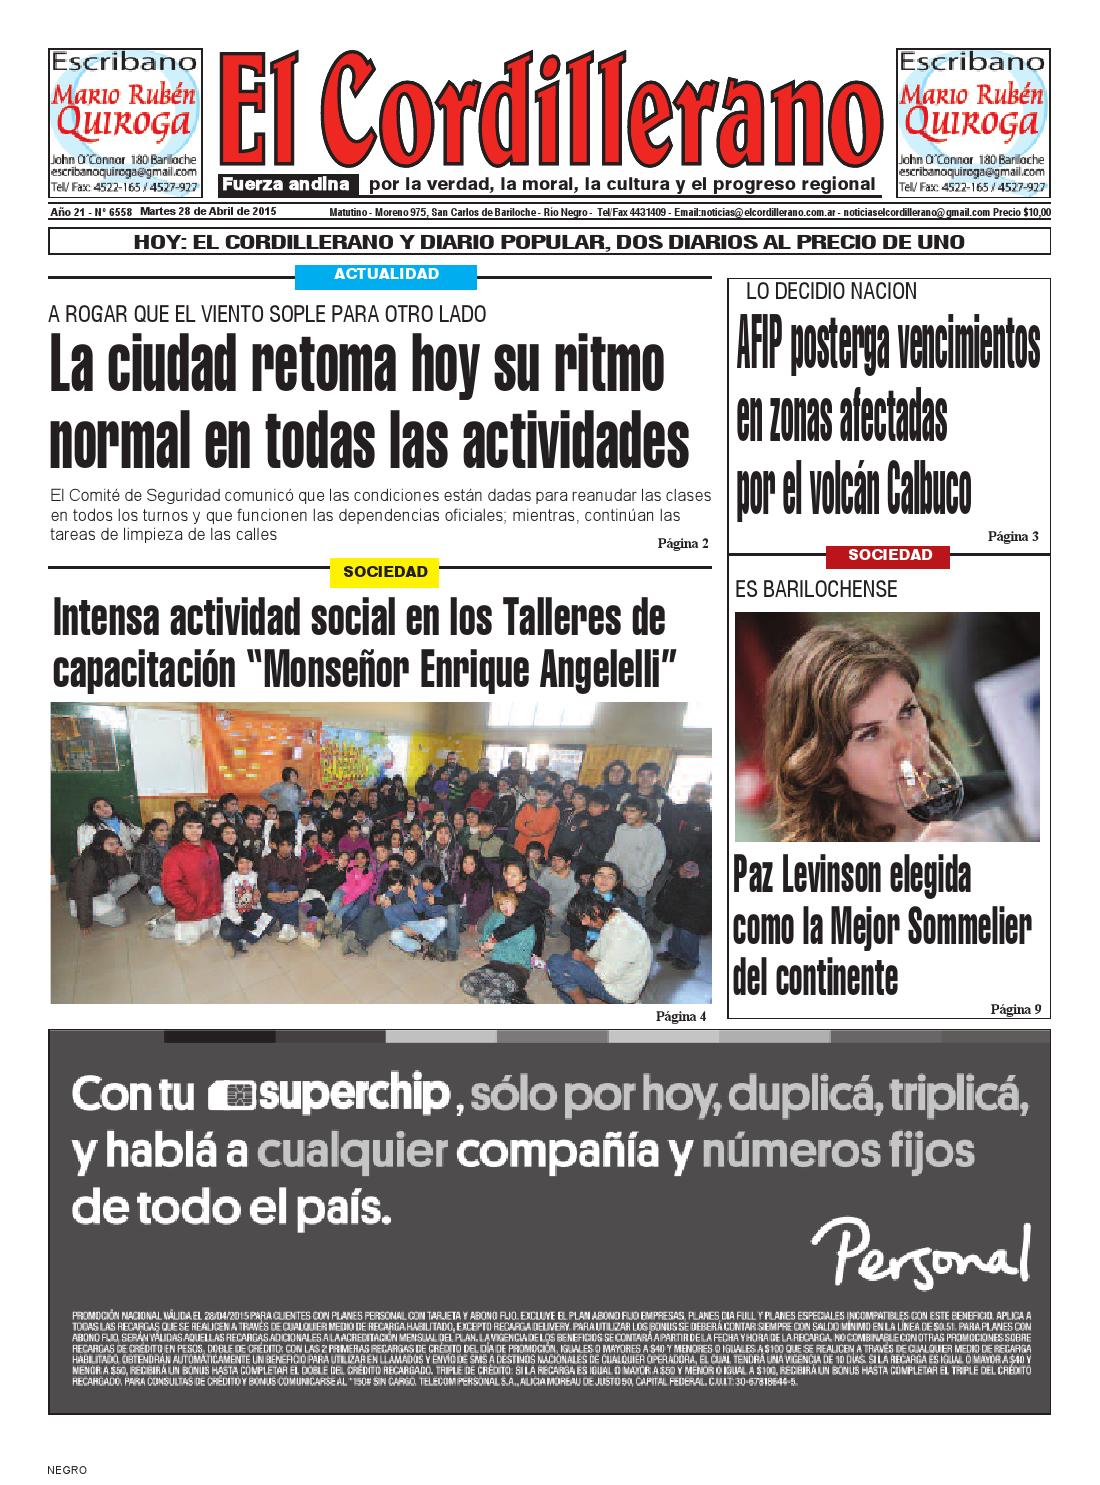 28 de abril de 2015 by El Cordillerano - issuu